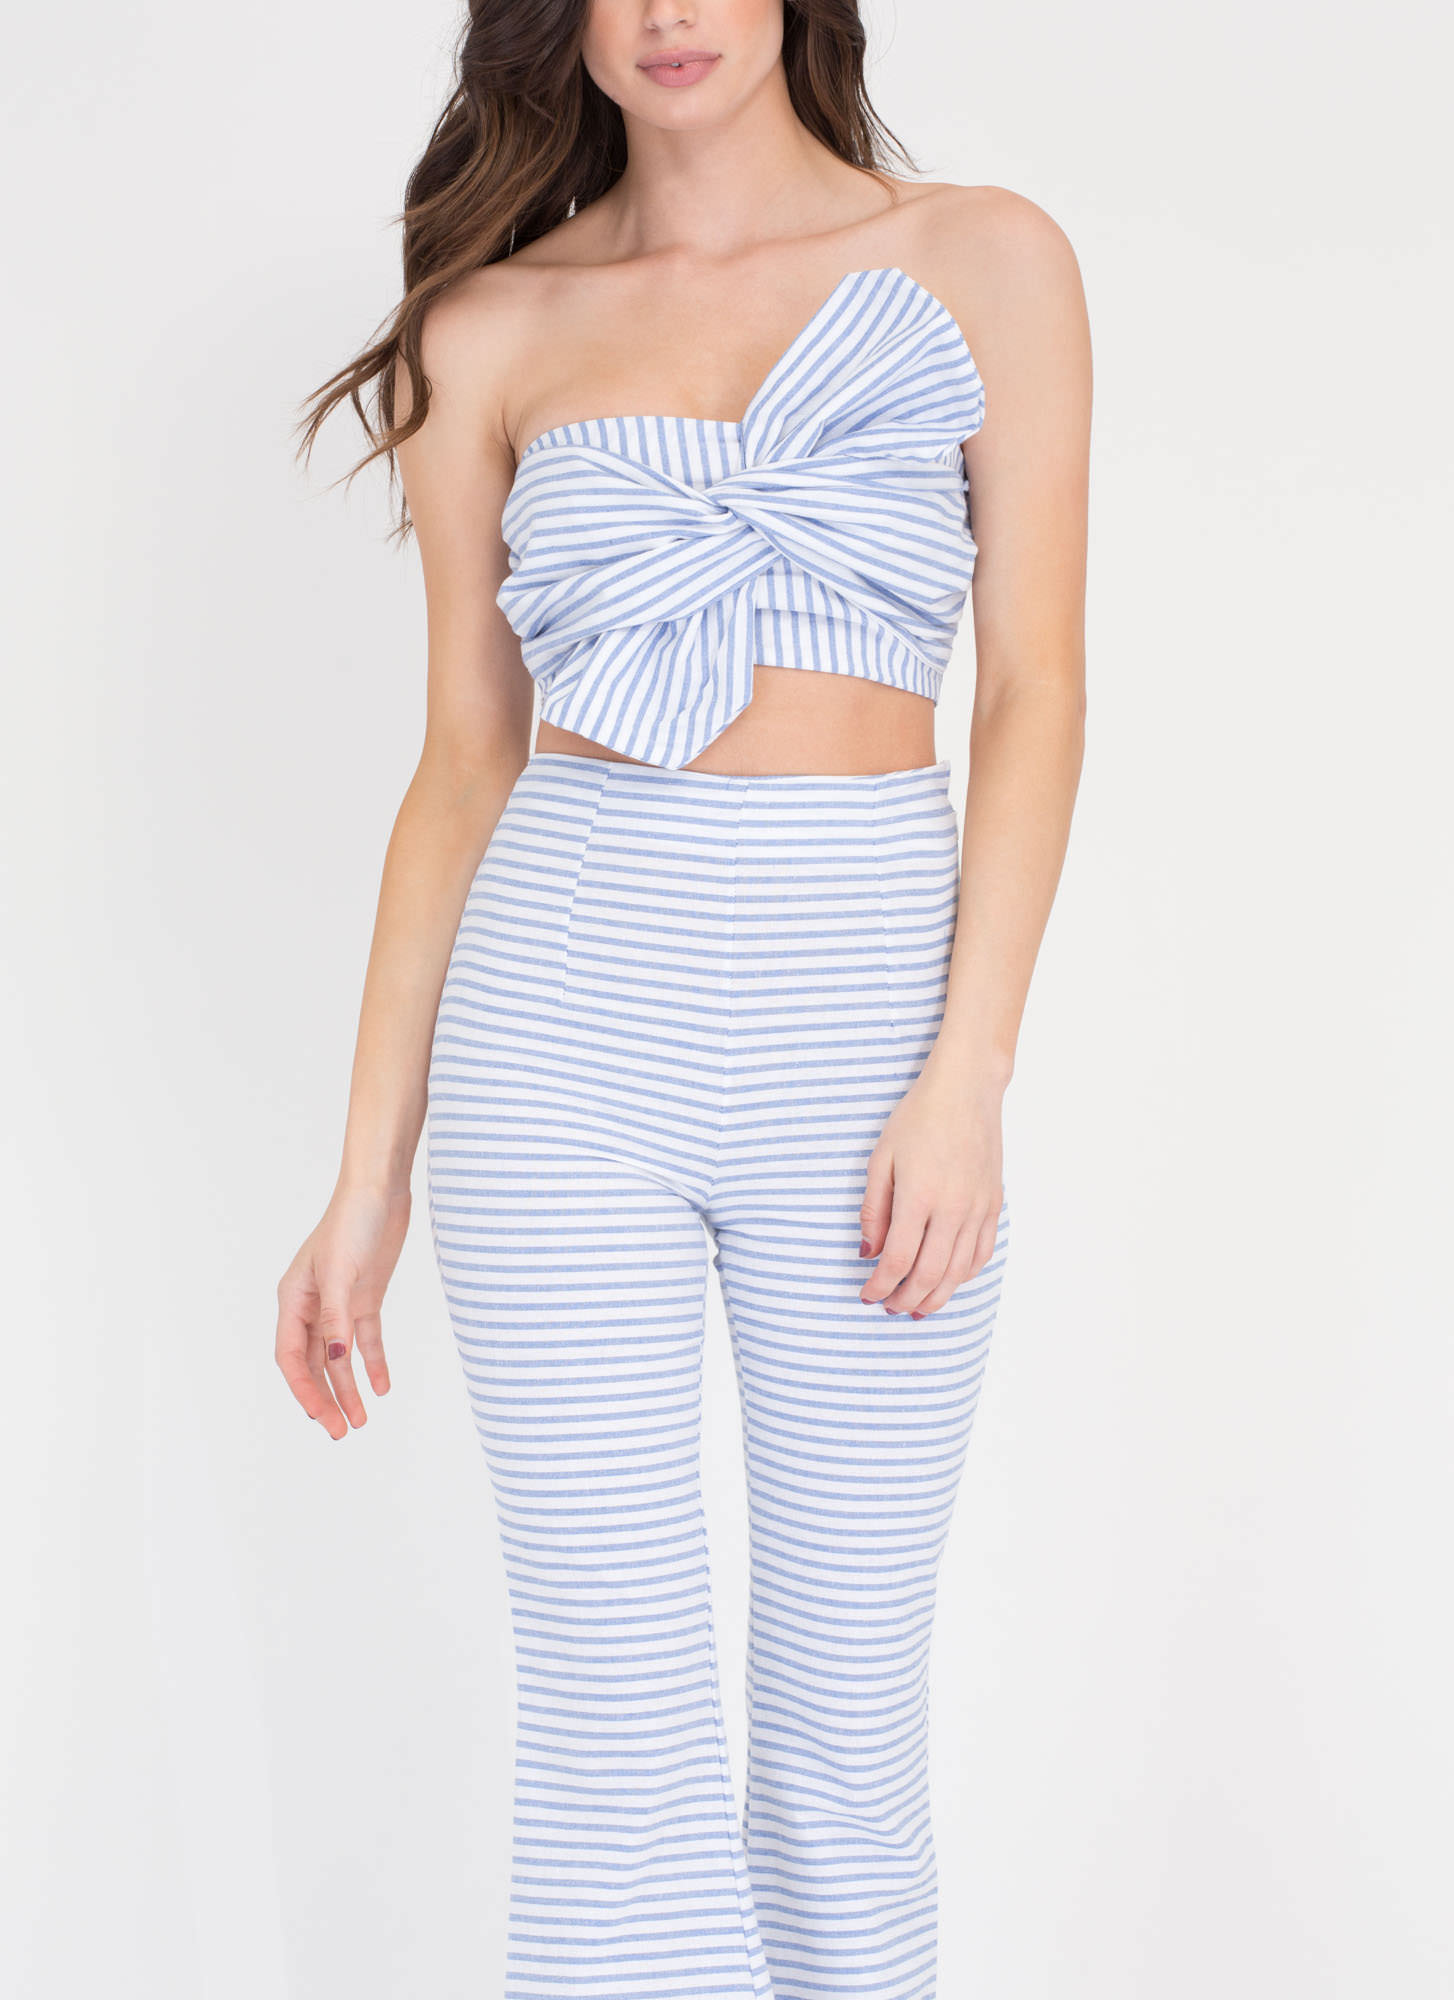 Boat Party Crop Top 'N Flared Pants Set BLUE